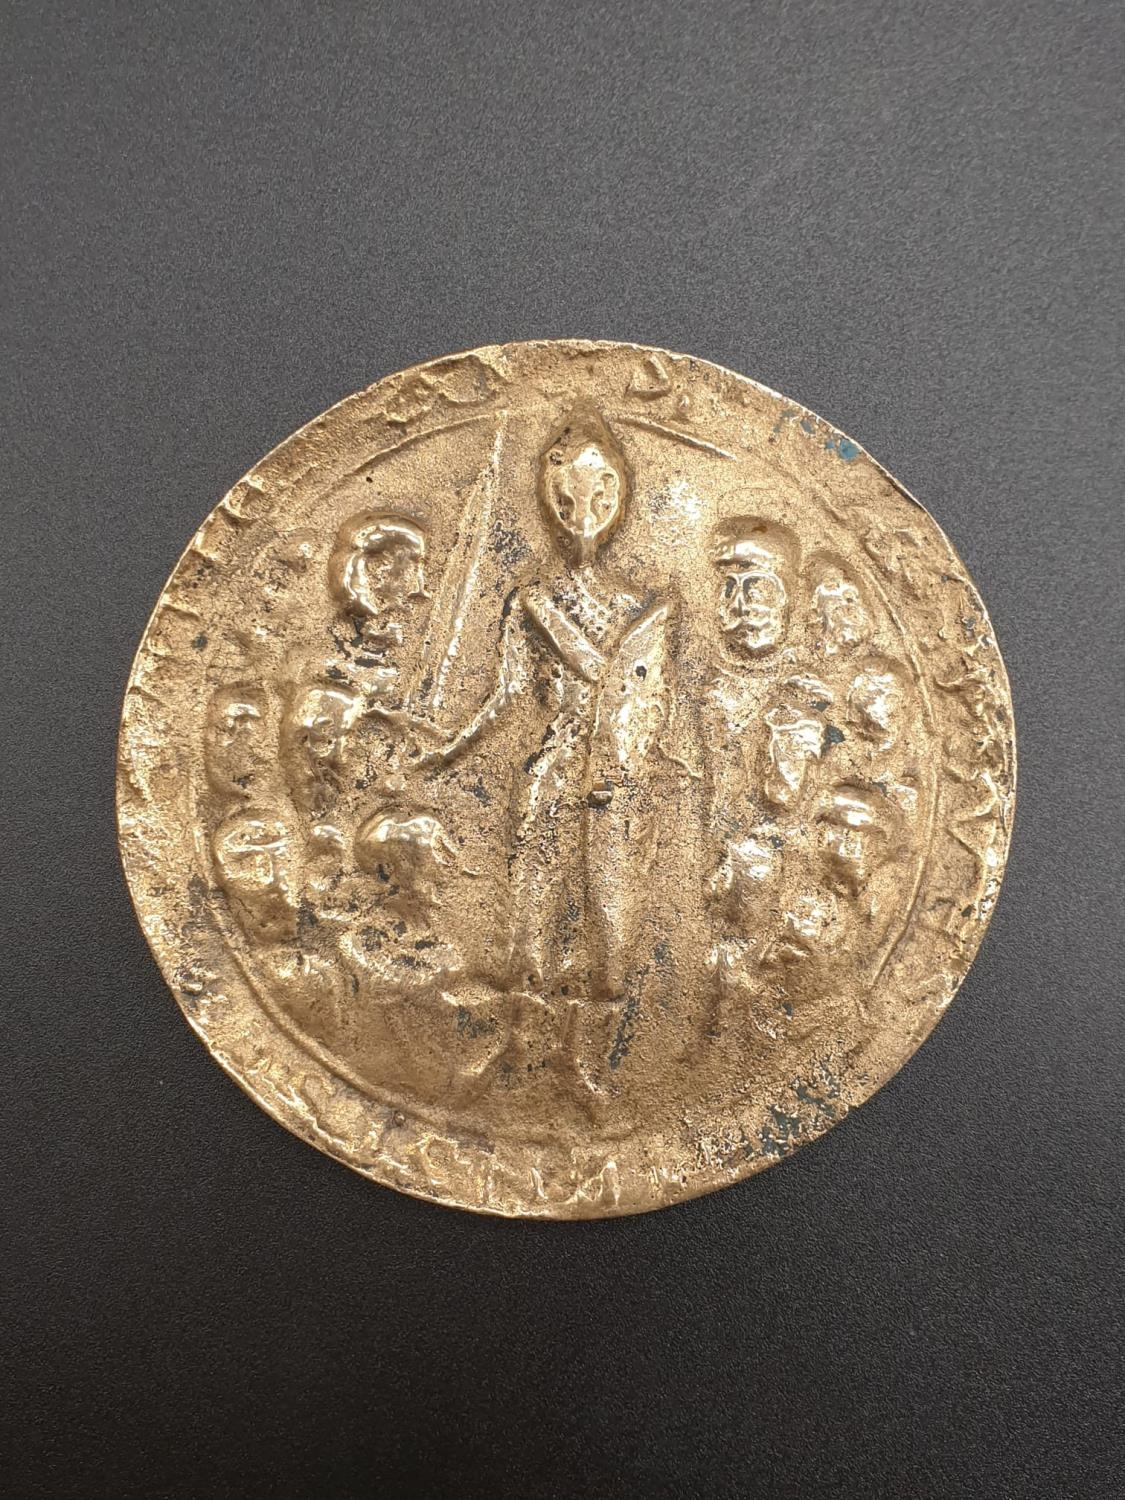 A HEAVY GILDED LARGE ONE SIDED COIN WITH TOP SIDE SEEMINGLY HAMMERED. 285.6gms 8cms diameter